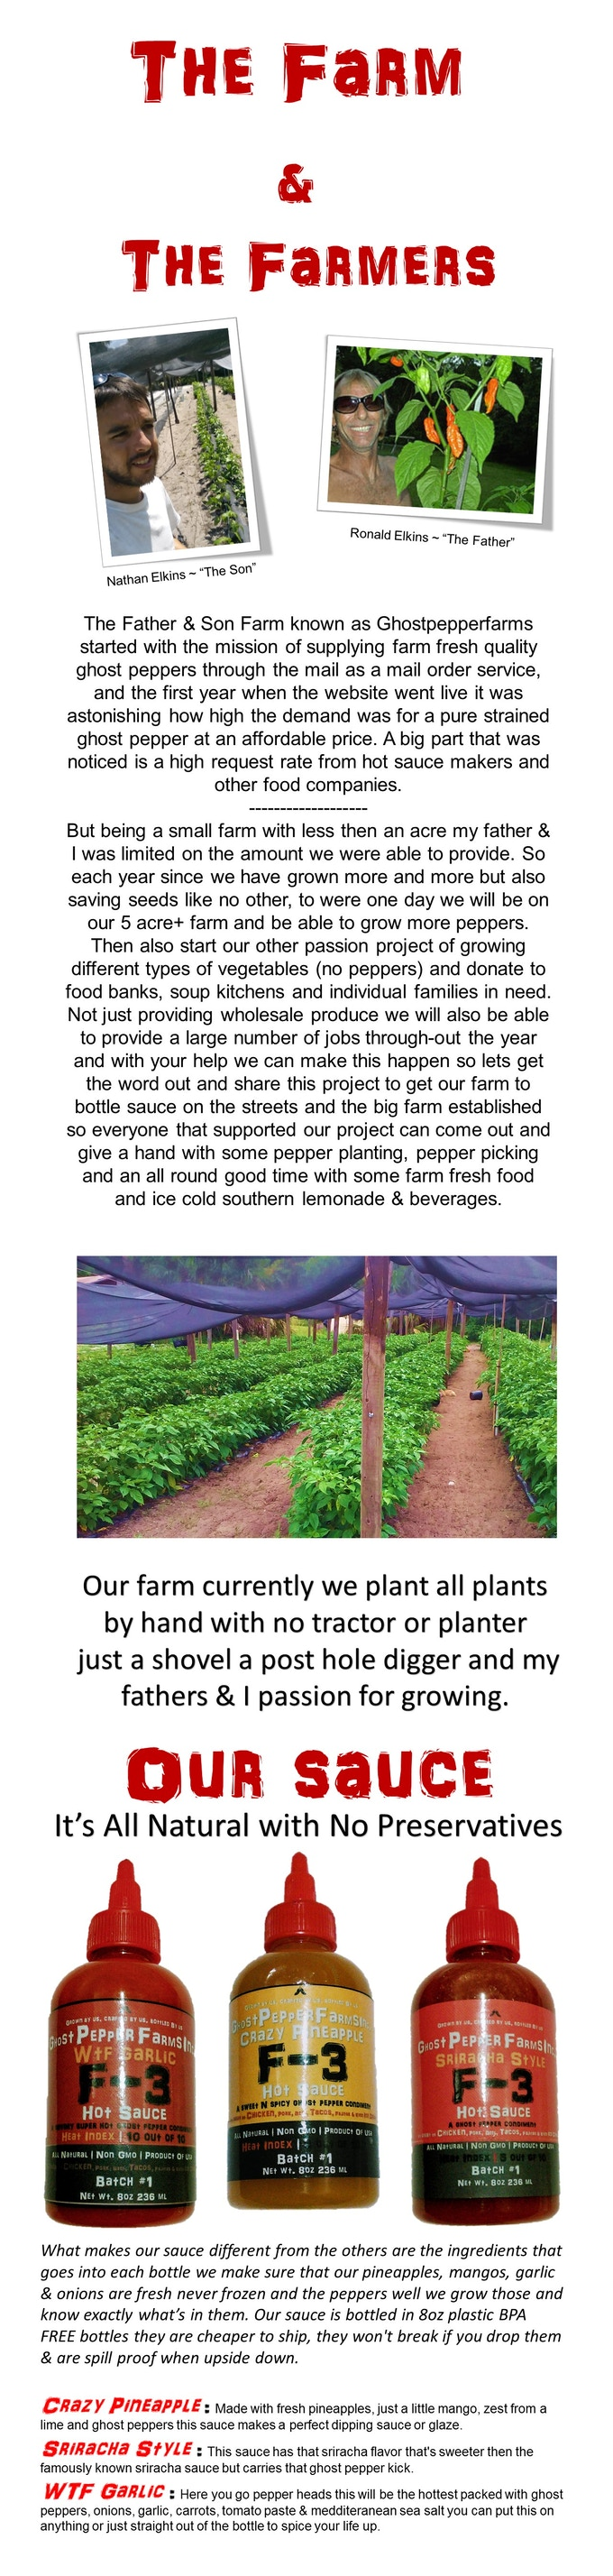 To Grow But Also Get A Building Put In On The Property To Make Our Hot  Sauce On Site Of Our Farm, Which Will Help Cut Costs Overall In The Long  Run